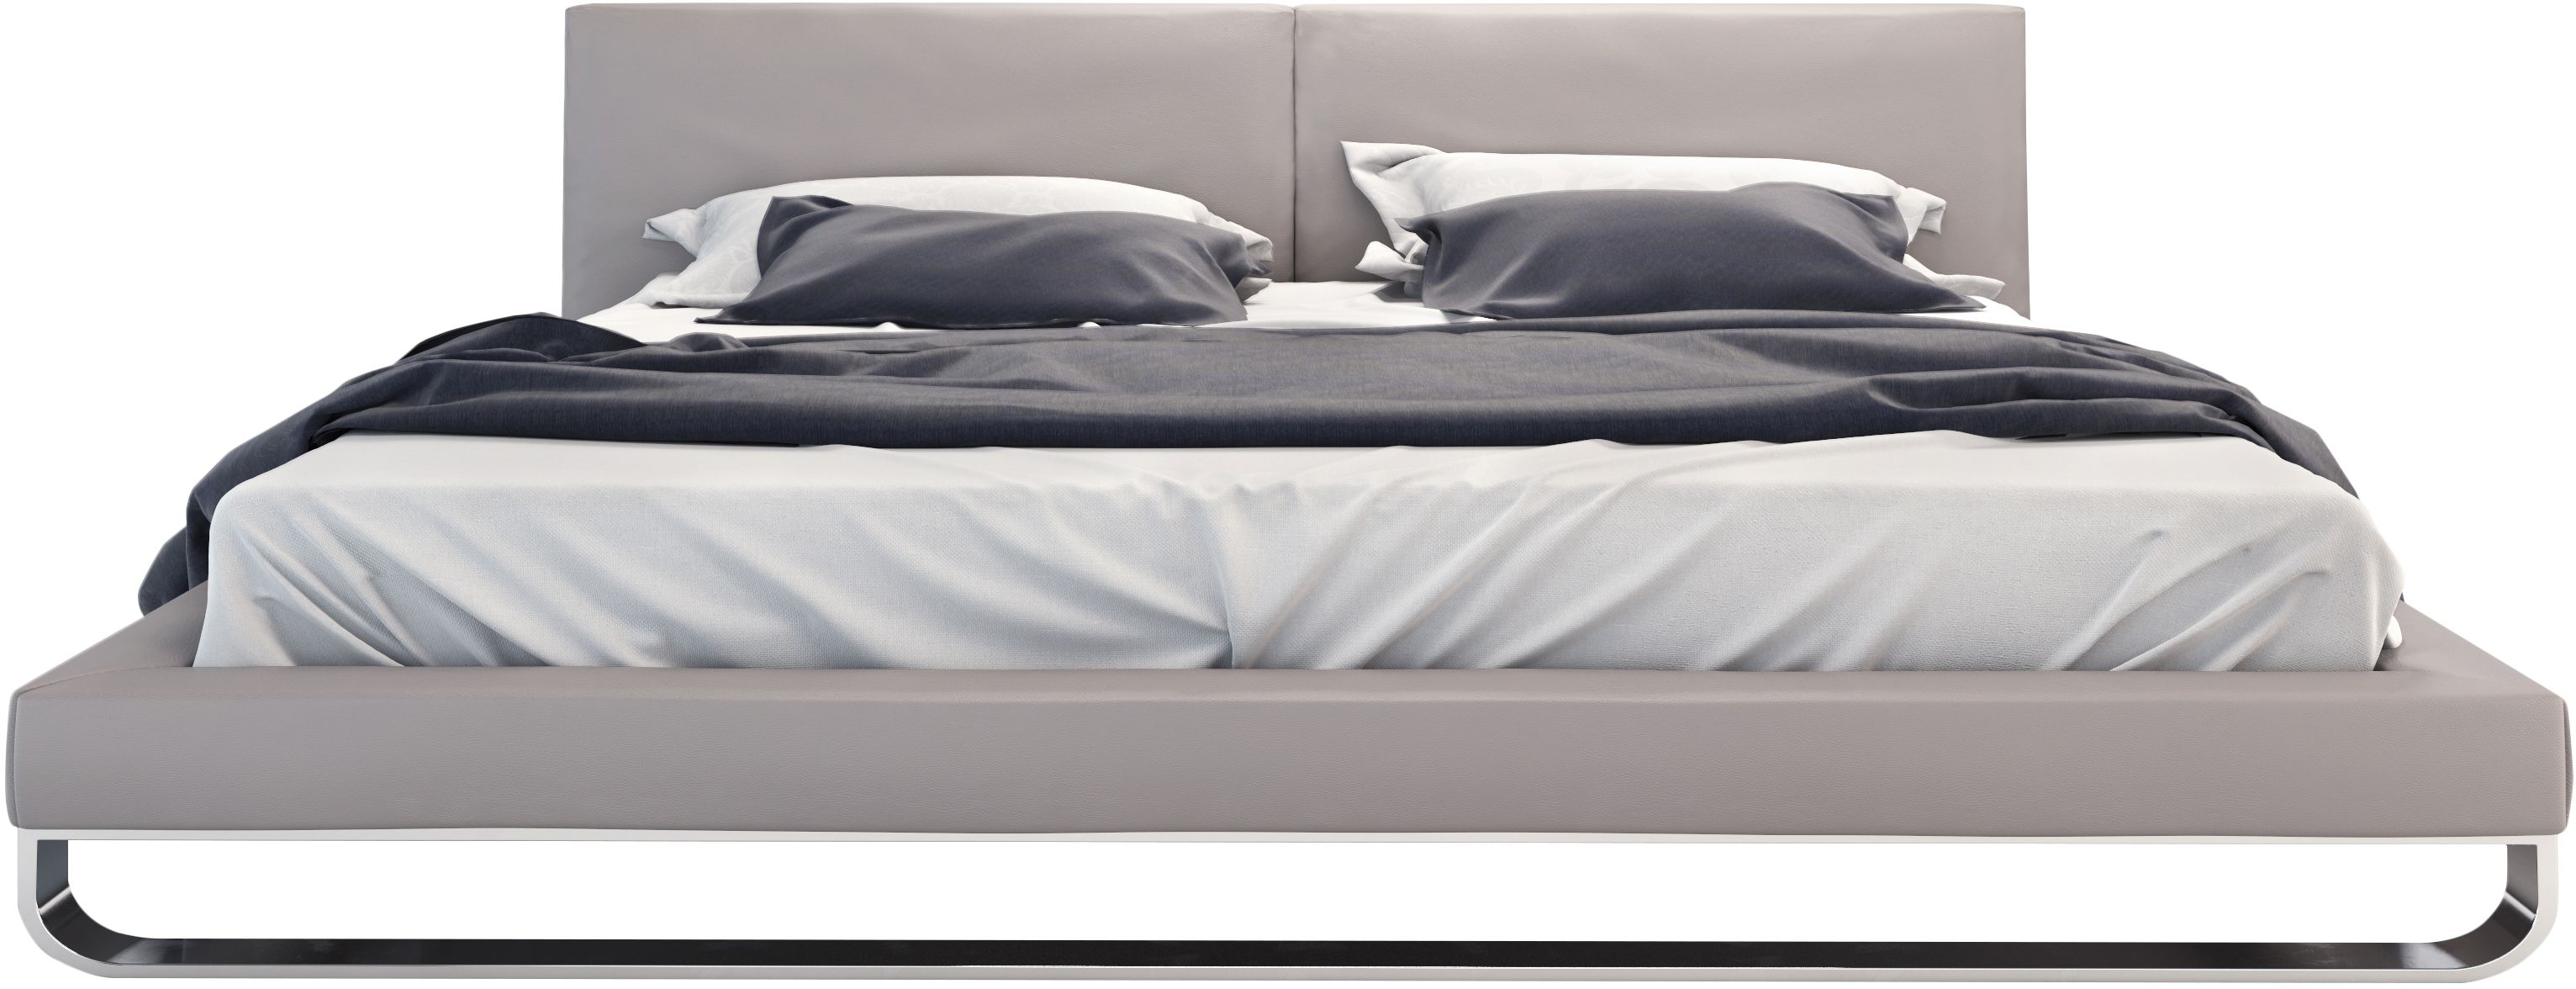 The Chelsea bed is a fine example of skilled artisan handwork and sophisticated design. Distinguishing this bed is the neatly tailored headboard, with middle seam line and clean side folds. The firm eco pelle upholstered headboard and frame rests atop a rounded polished steel base. Inner-spring or Foam/Latex mattress sits snuggly atop a flat, solid pine platform with air ventilation providing a cleaner, healthier sleep. Platform height measures 10 inches (1 inch mattress inset). No box s...